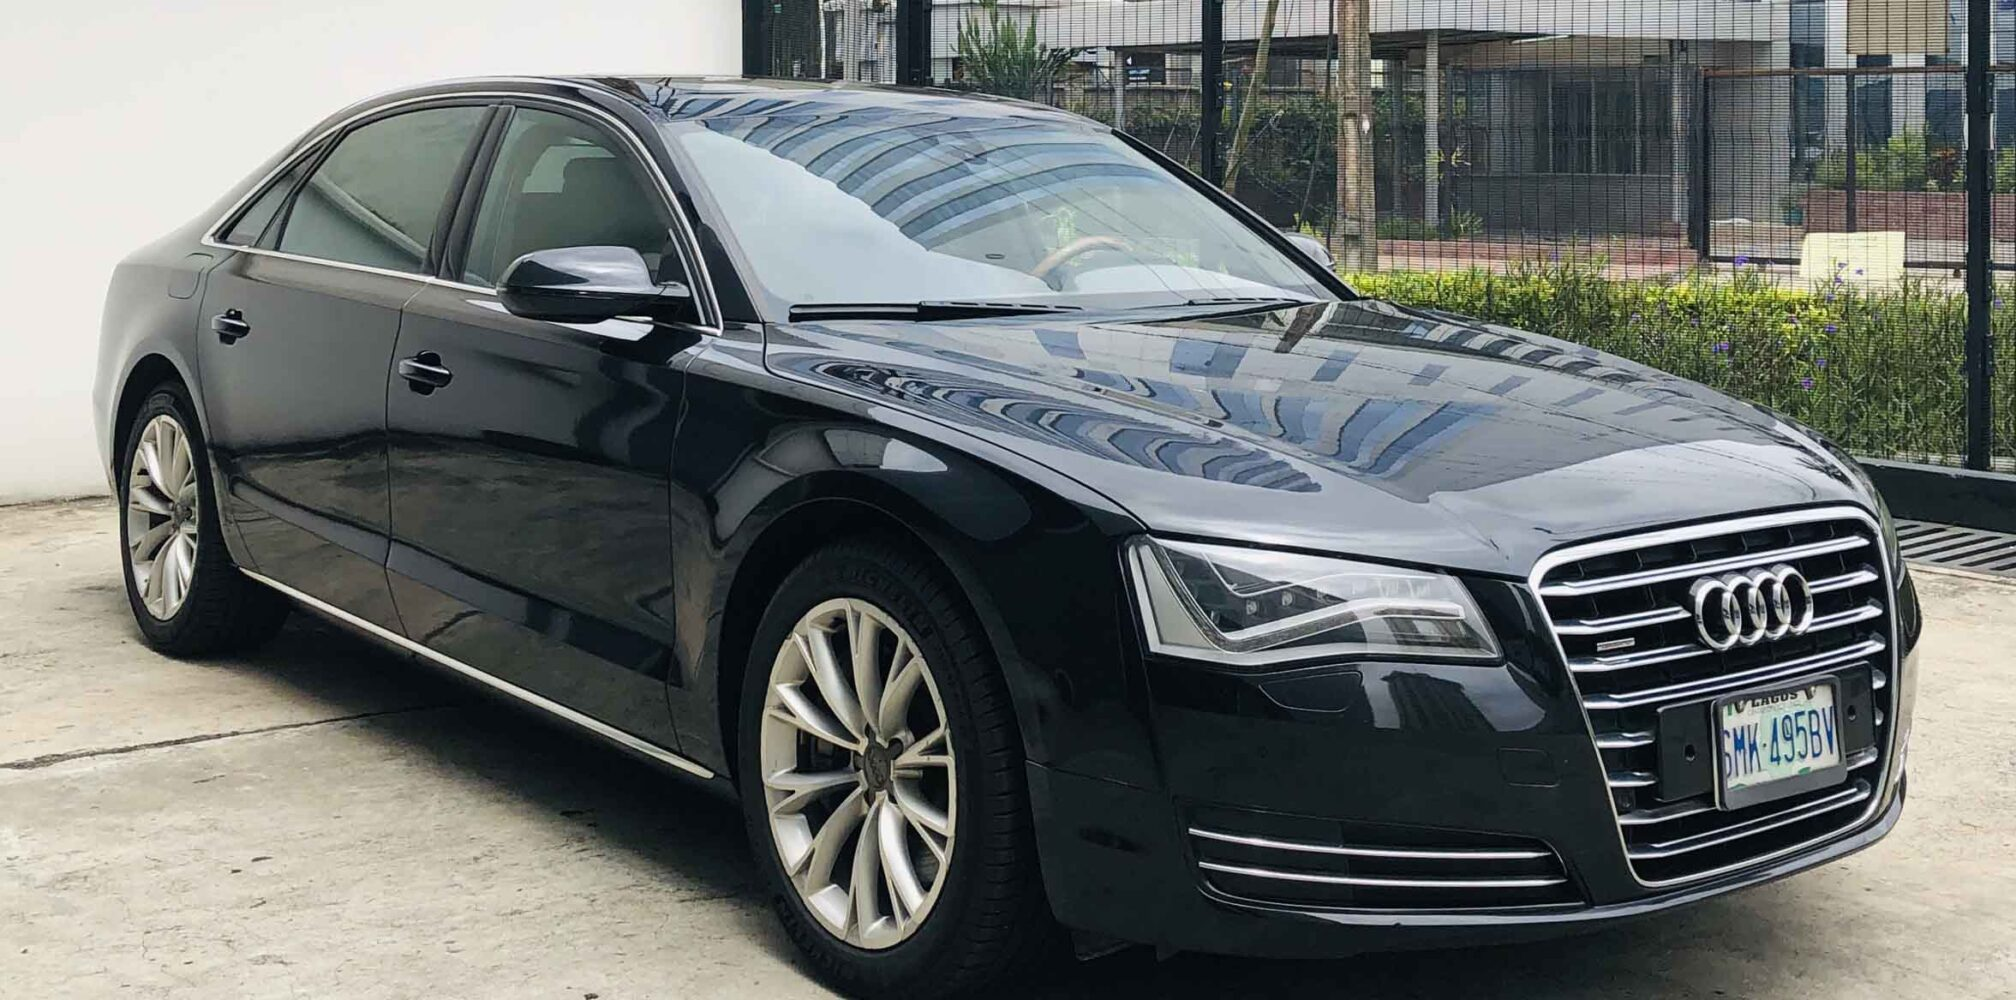 stallion approved - pre-owned audi 8 - front view 2